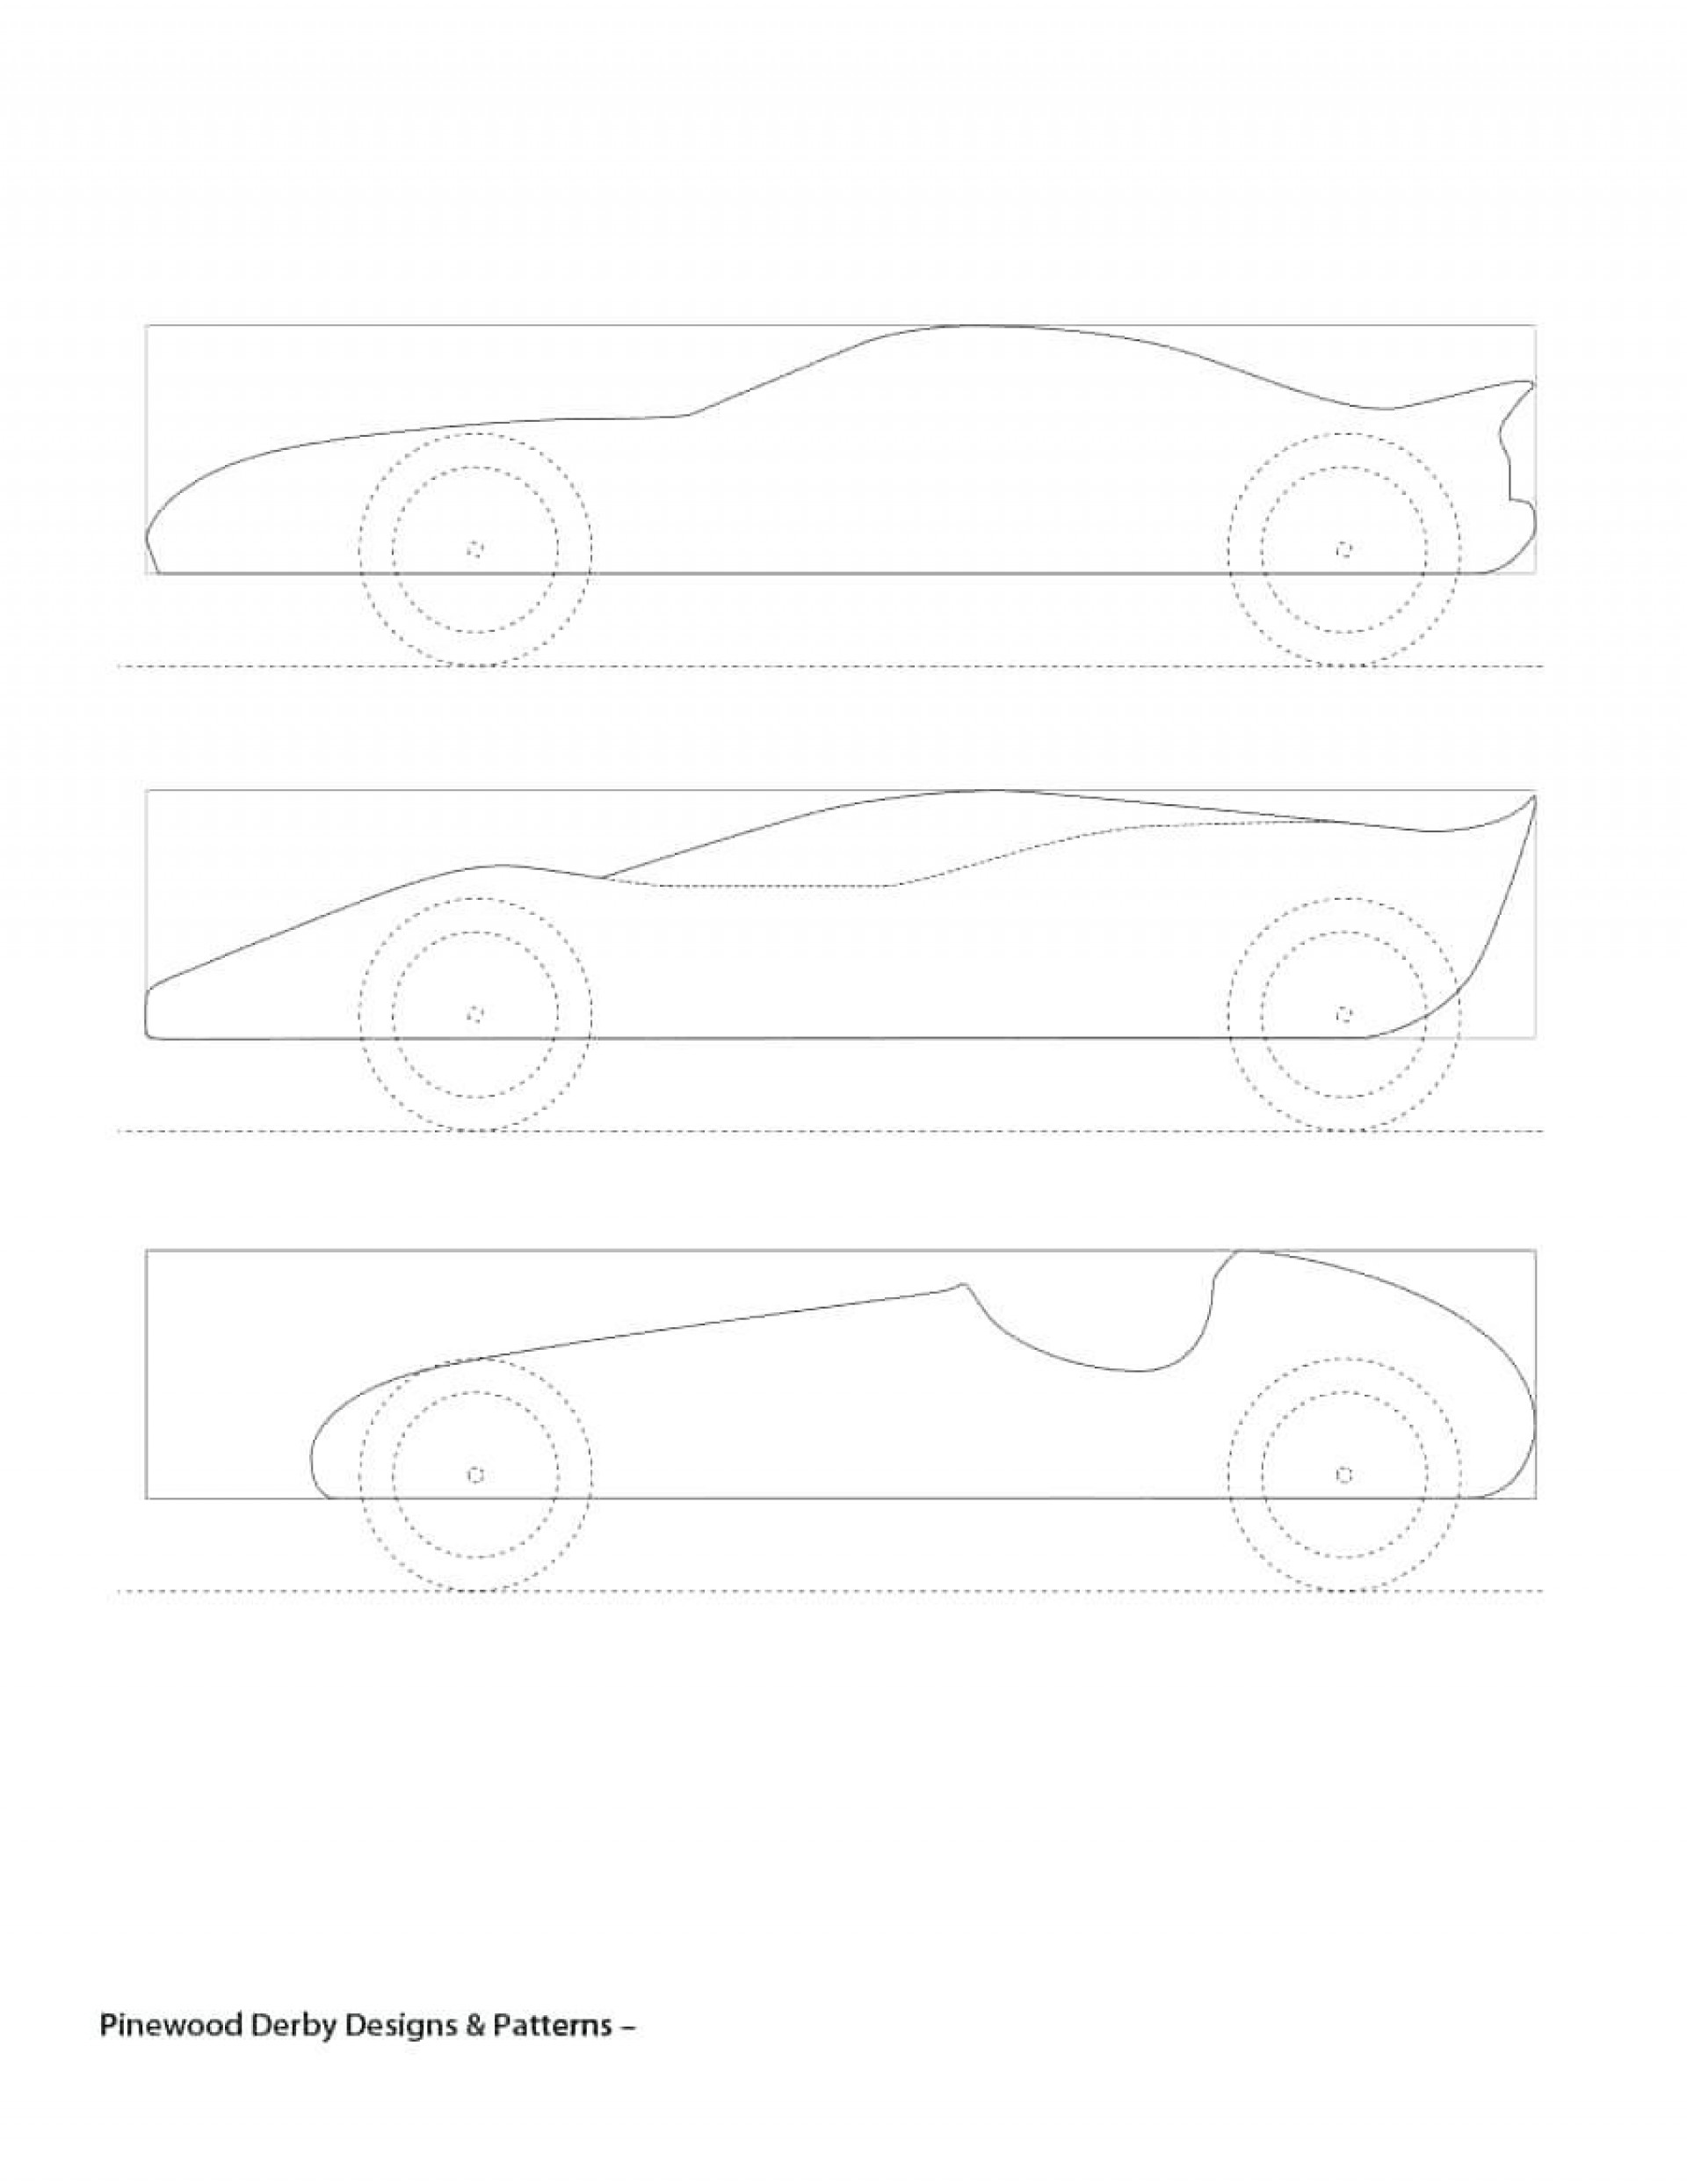 006 Amazing Fastest Pinewood Derby Car Template Sample  Templates World Design1920